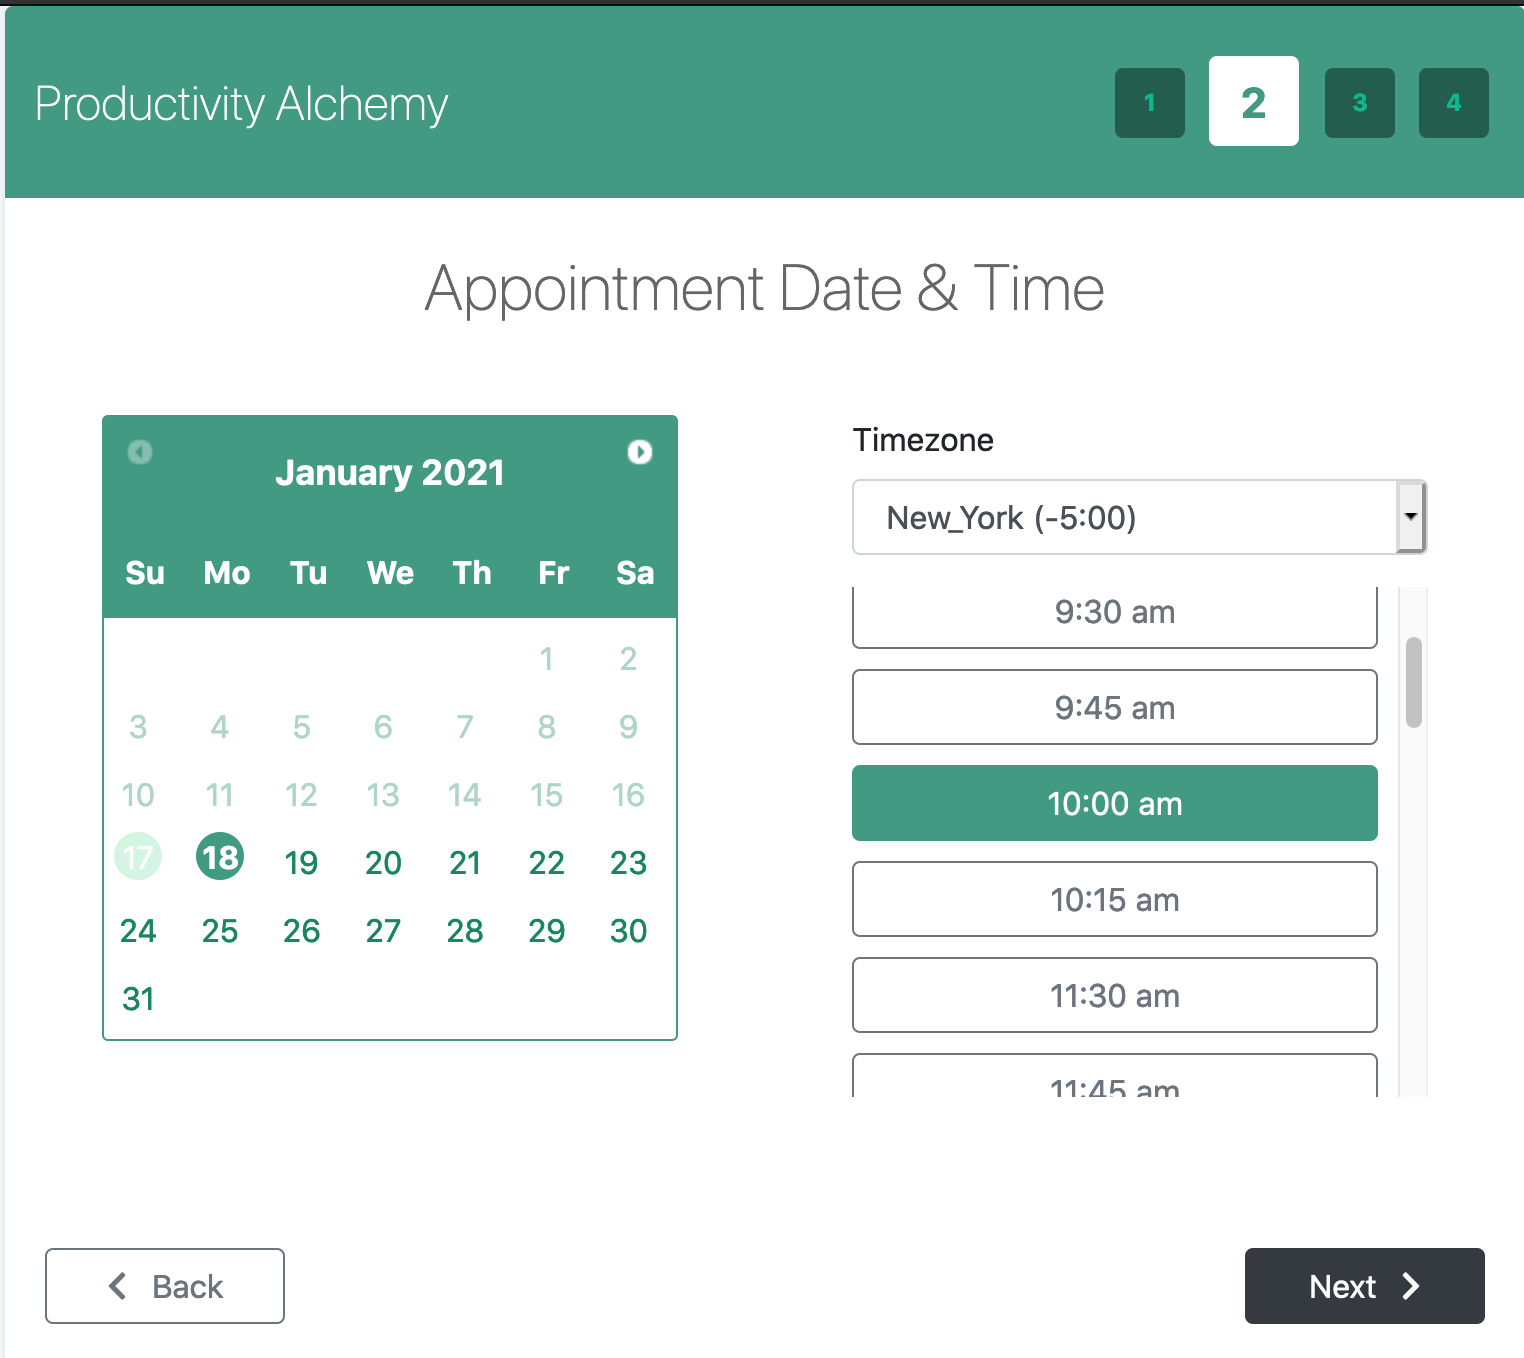 Appointment, Date, and Time settings